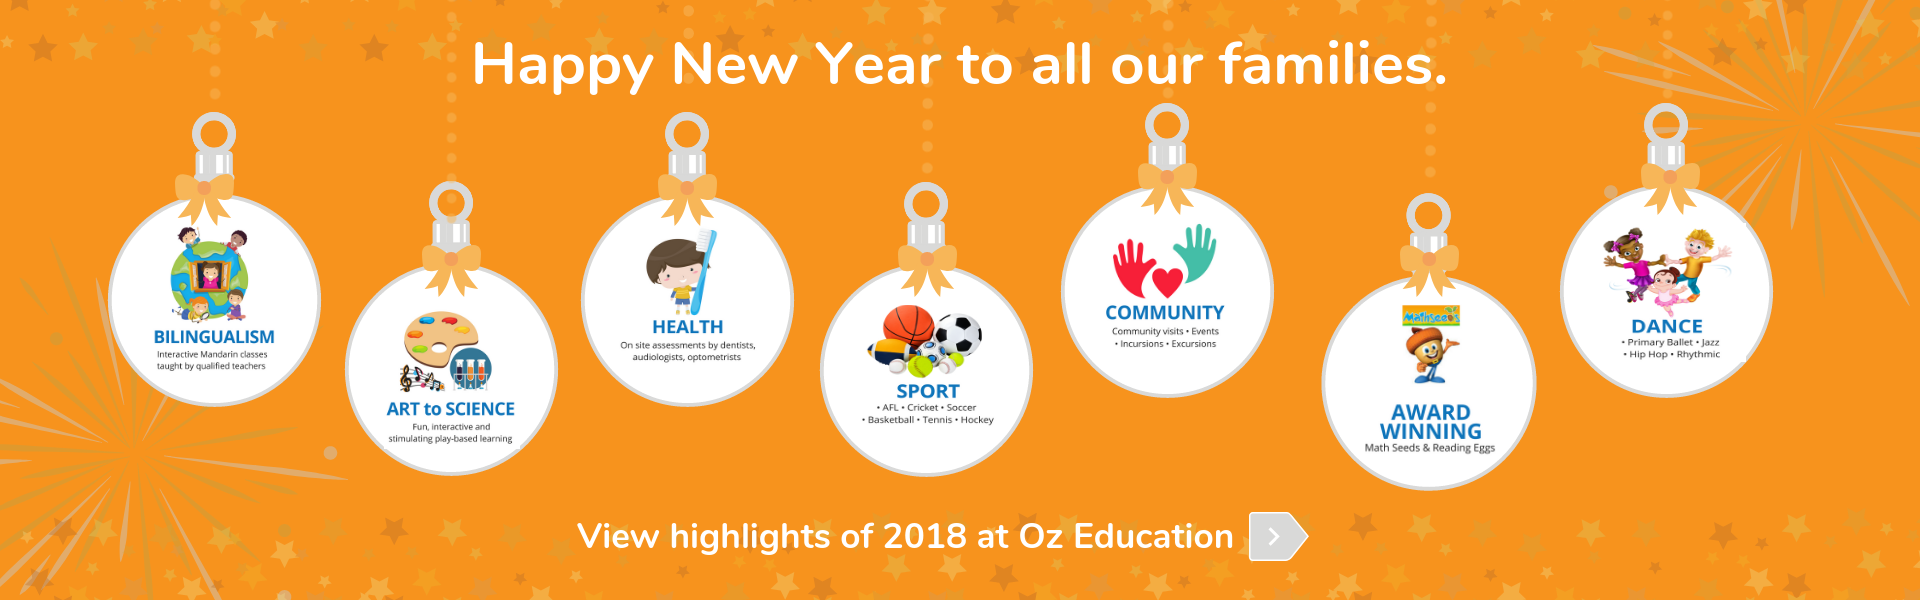 Happy New Year 2019 - View highlights of 2018 at Oz Education